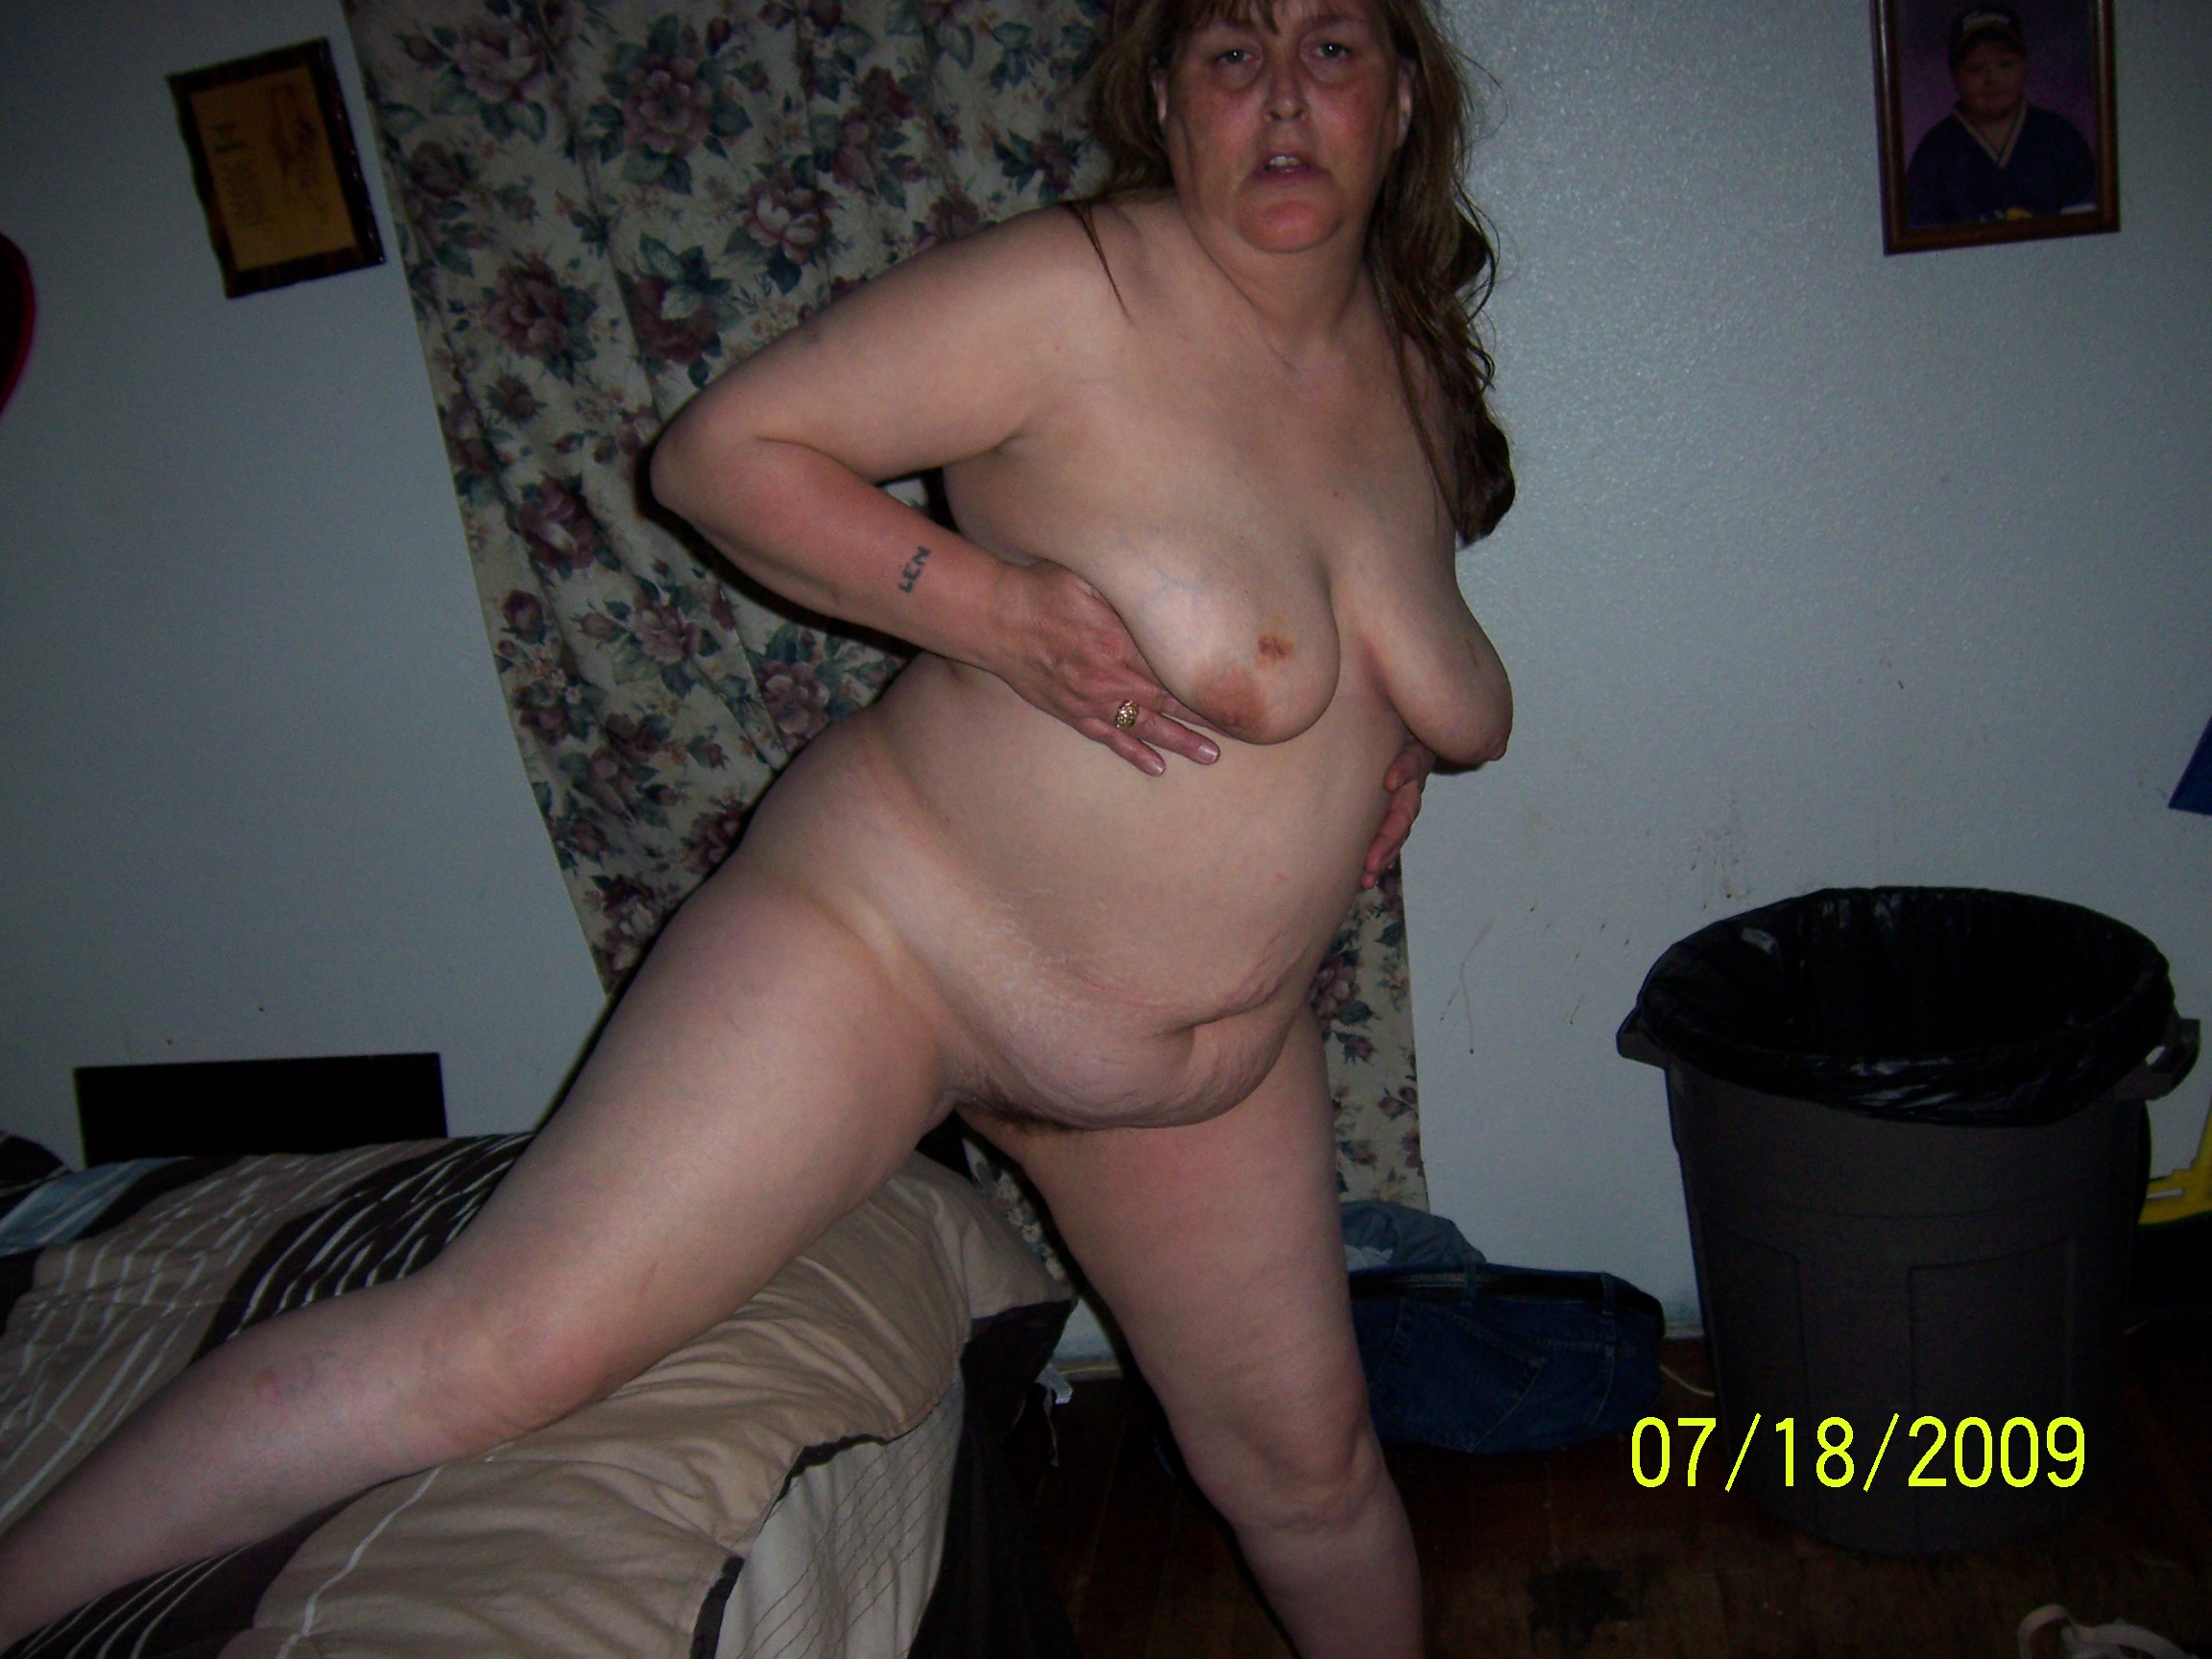 Not minnesota girl amateur nude